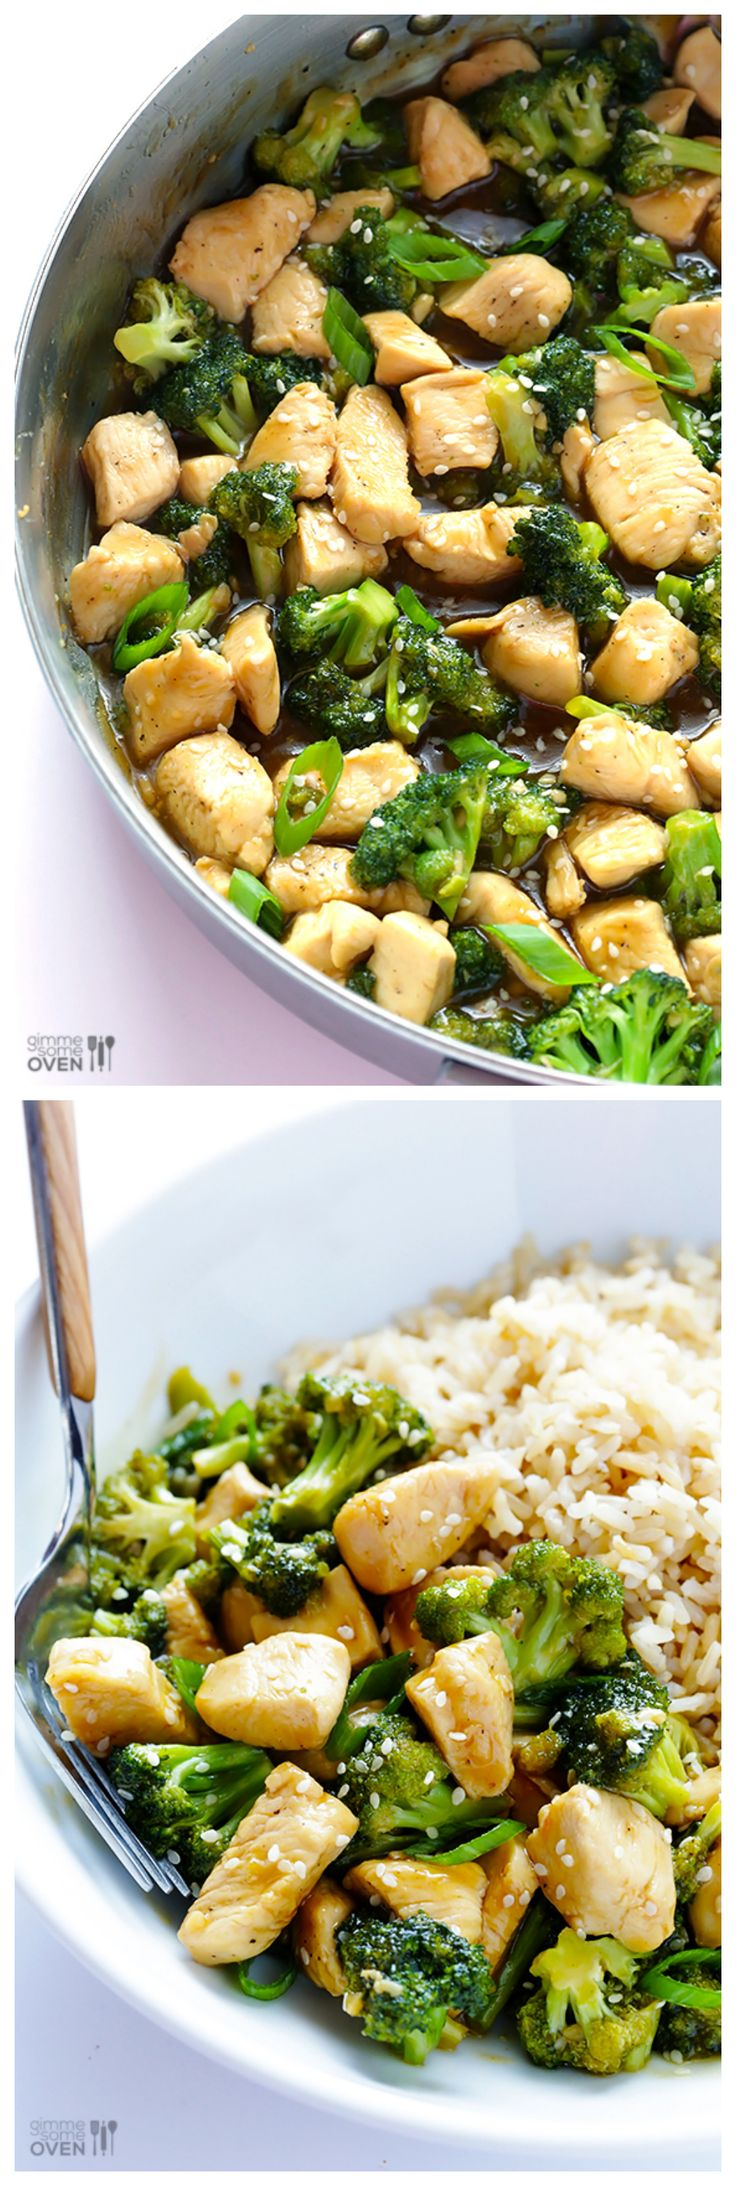 12-Minute Chicken  Broccoli -- fresh, flavorful, and ready to go in just 12 minutes